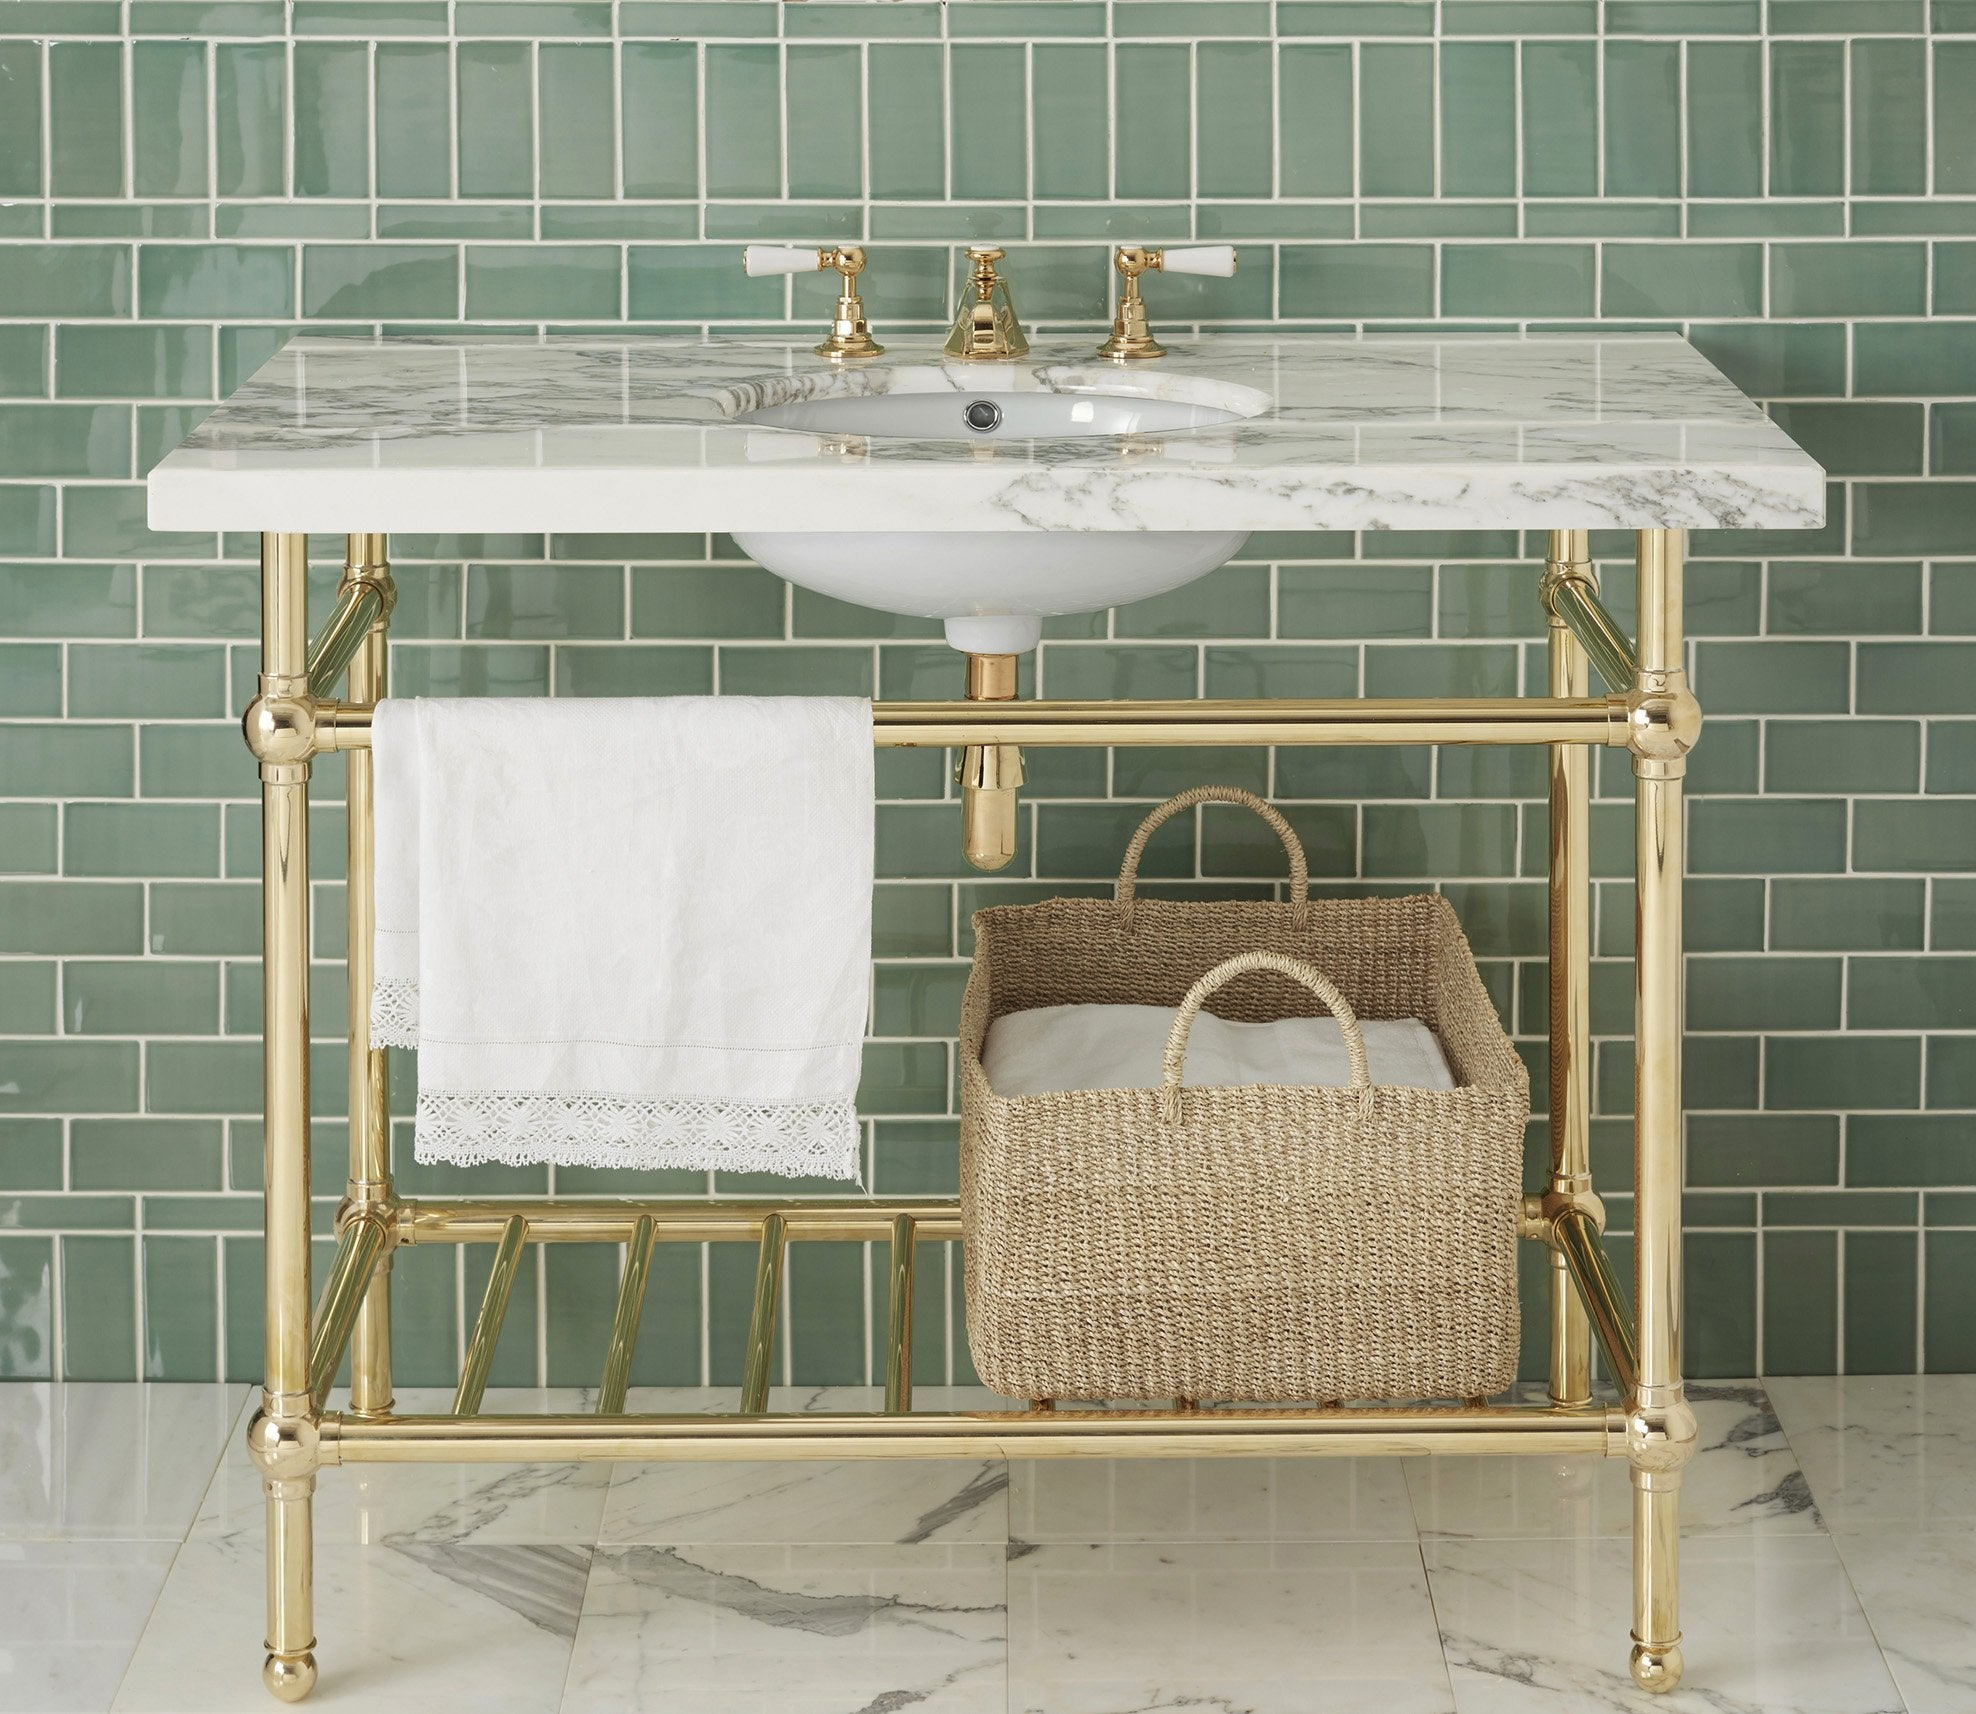 Gotham Washstand with Metal Shelf Extra Wide Single Product Image 1